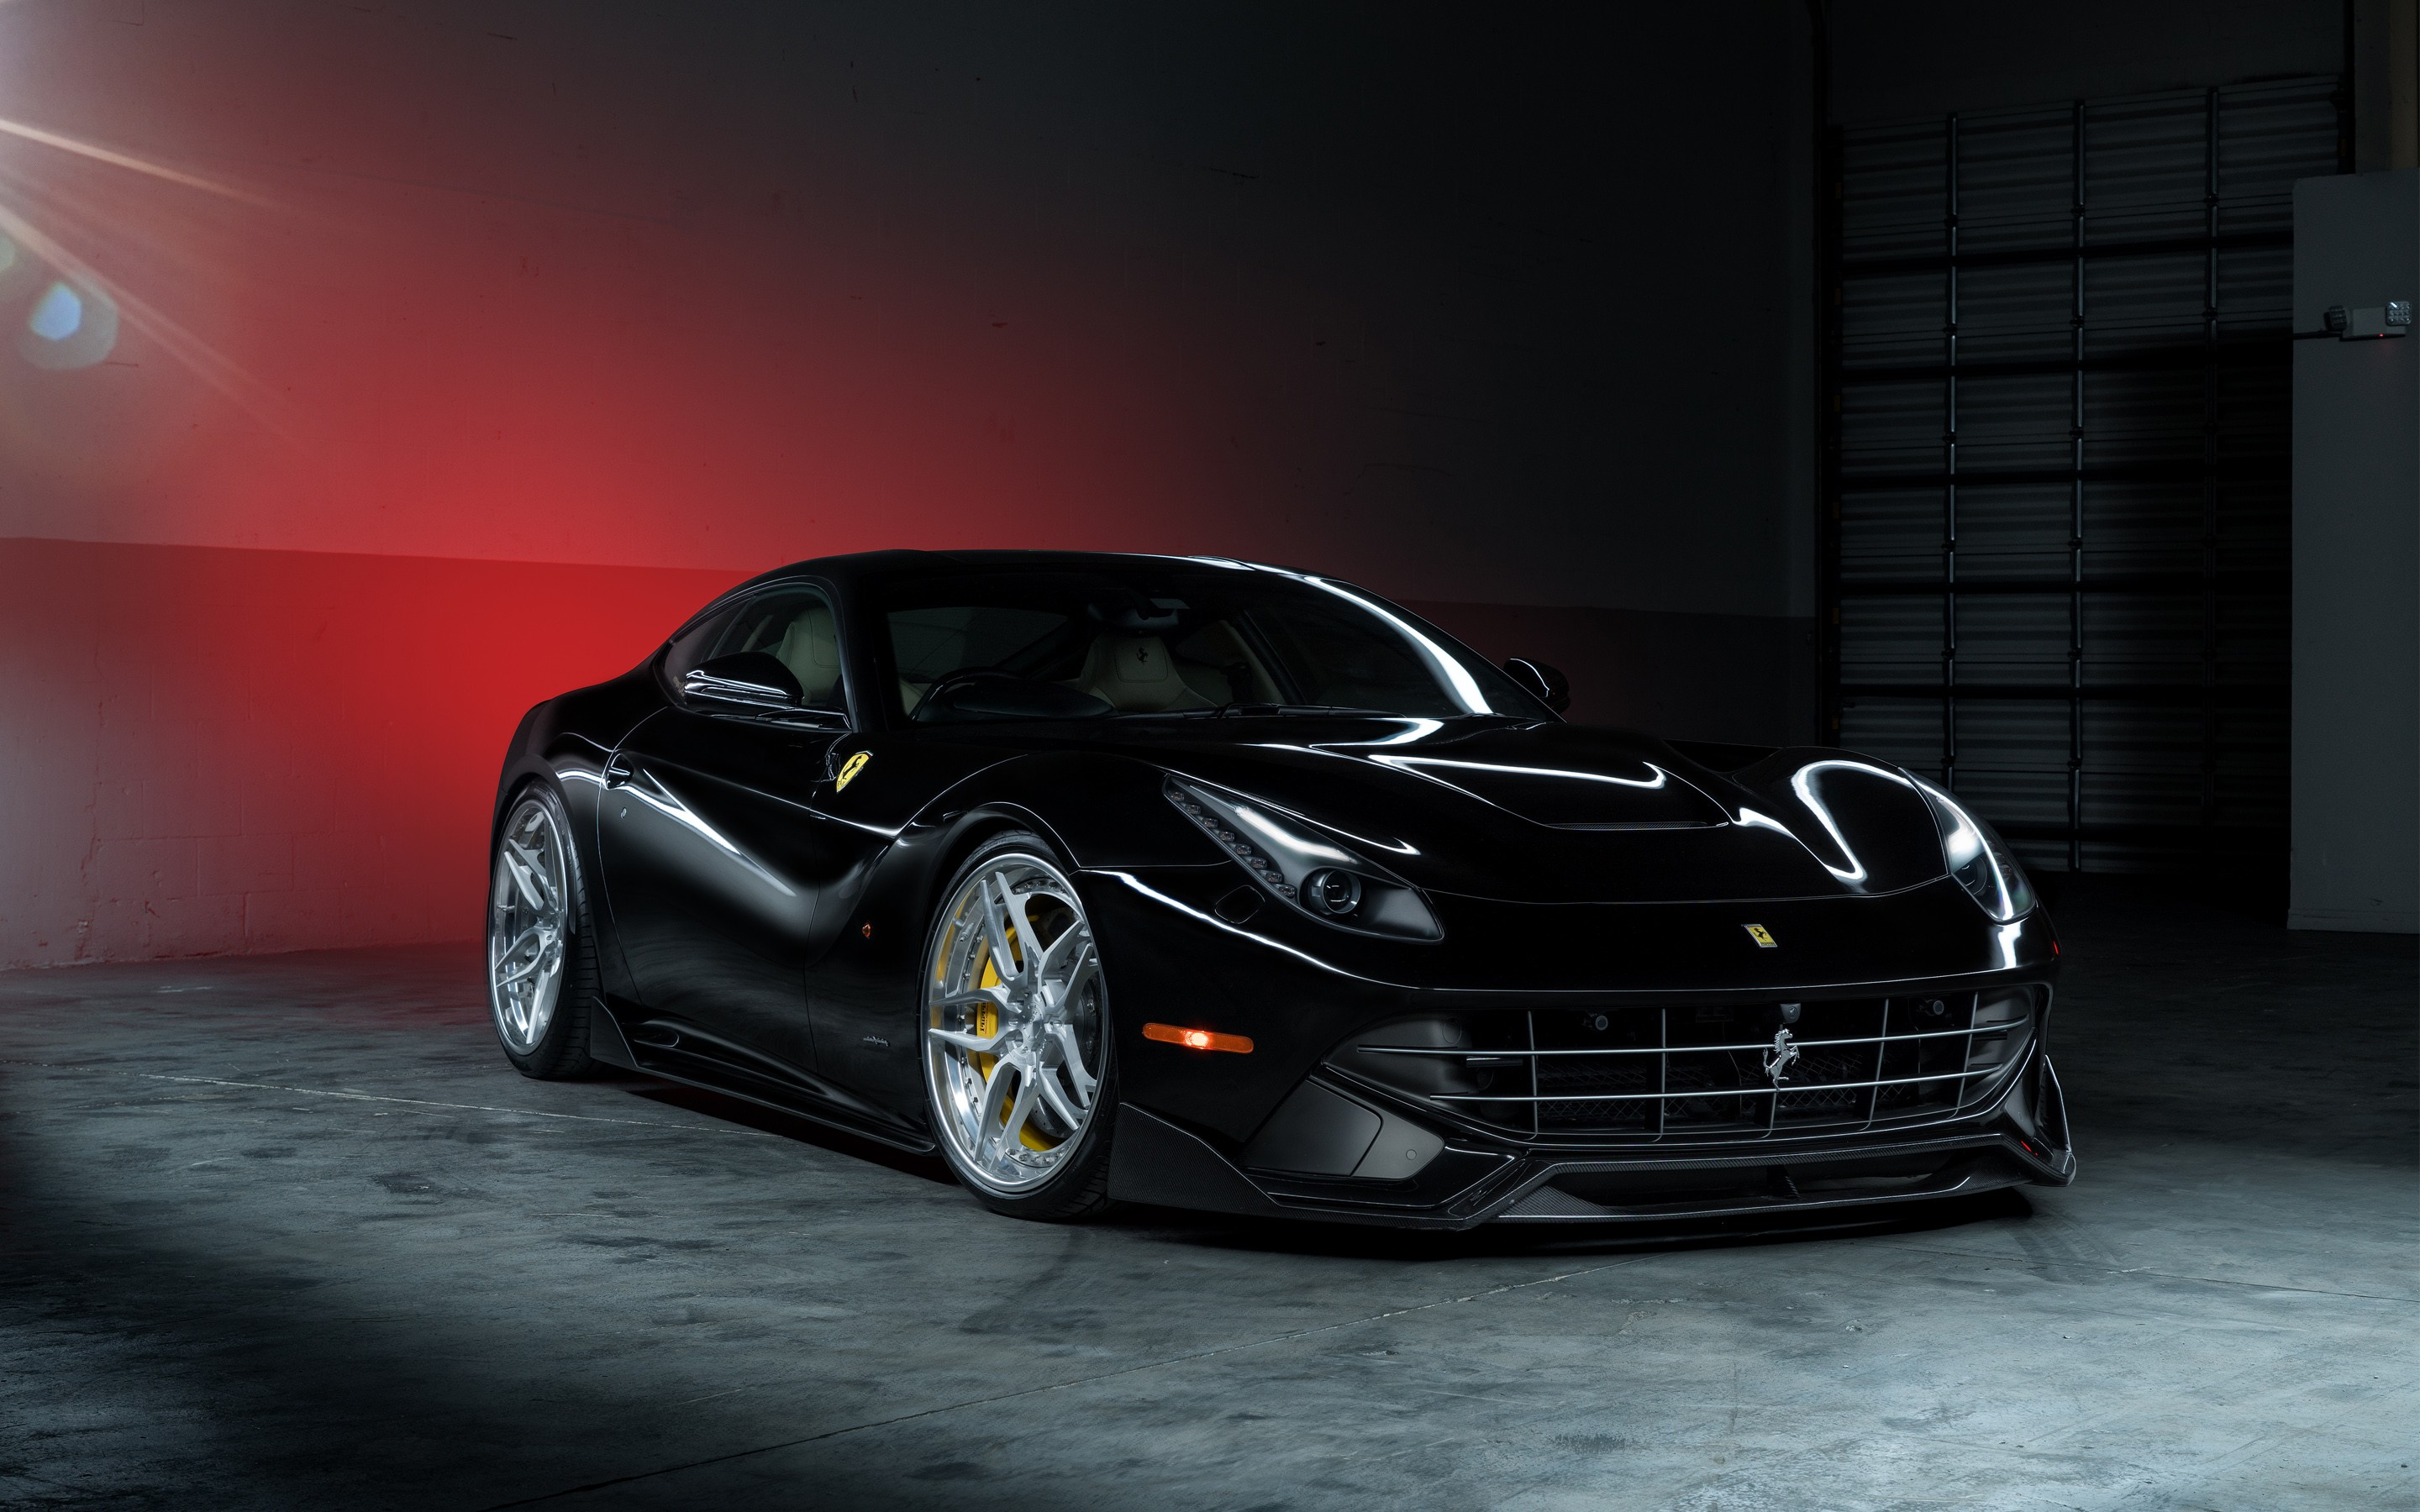 Ferrari F12 Berlinetta Hd Cars 4k Wallpapers Images Backgrounds